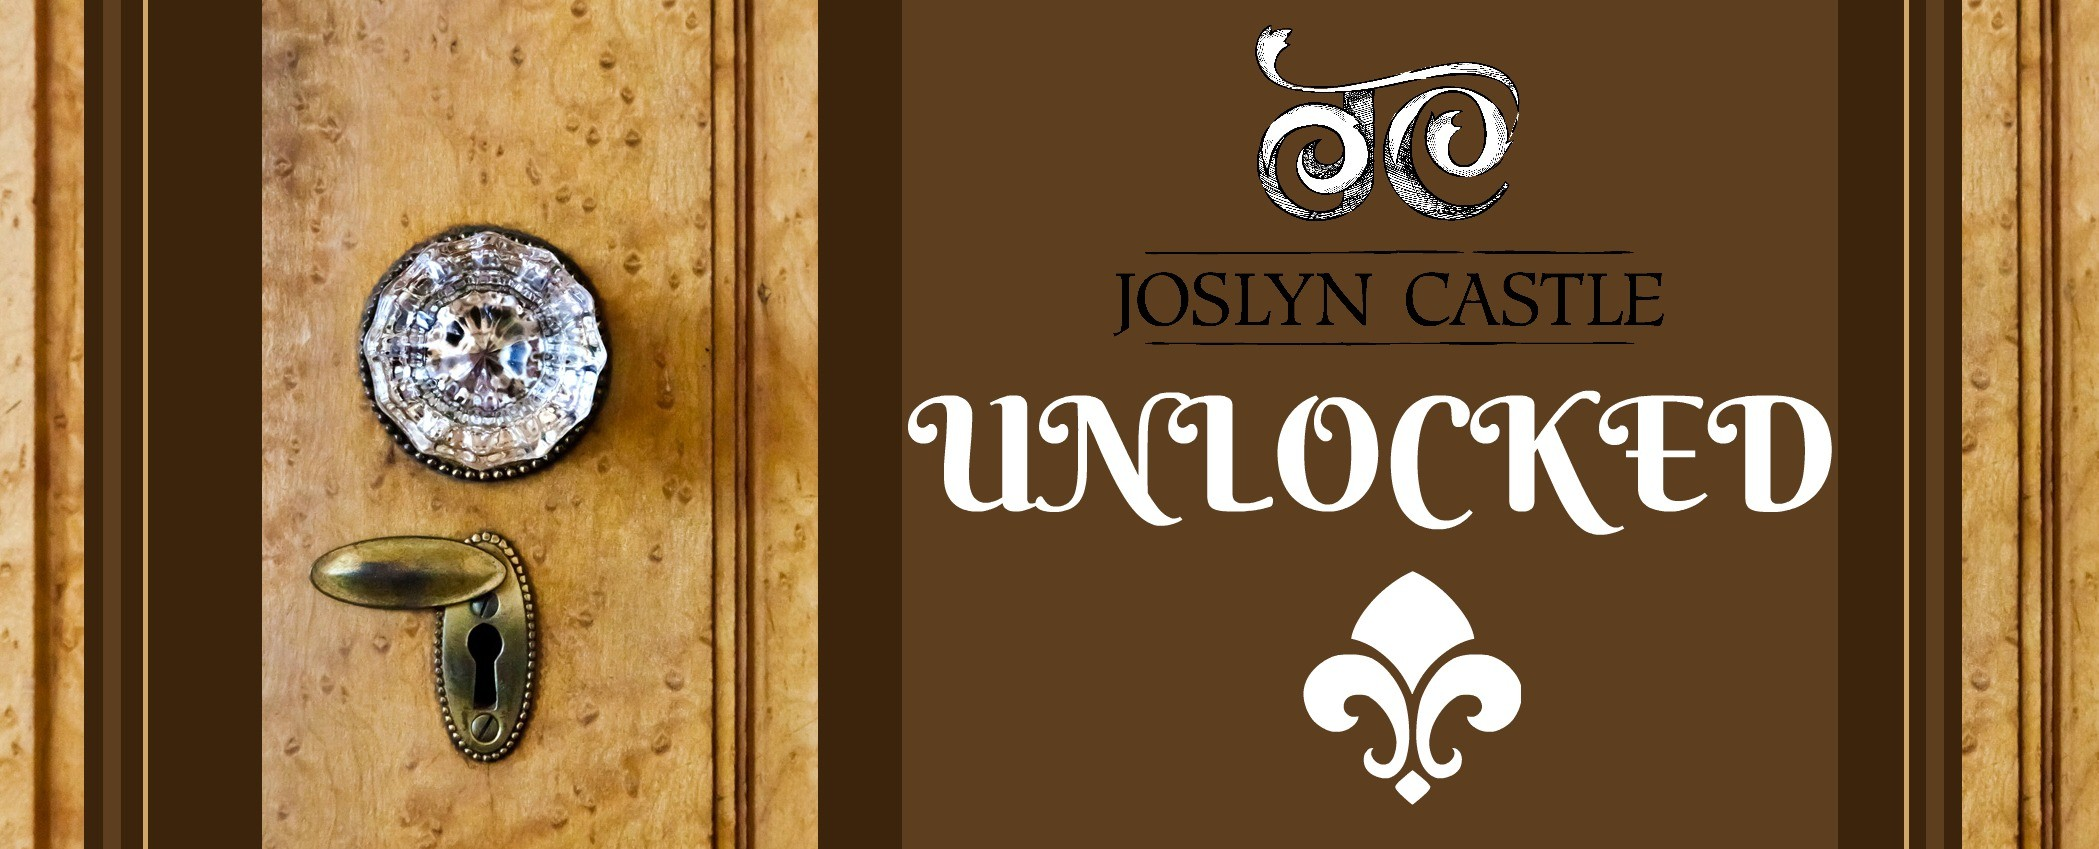 Joslyn Castle Unlocked: Holiday Edition SOLD OUT